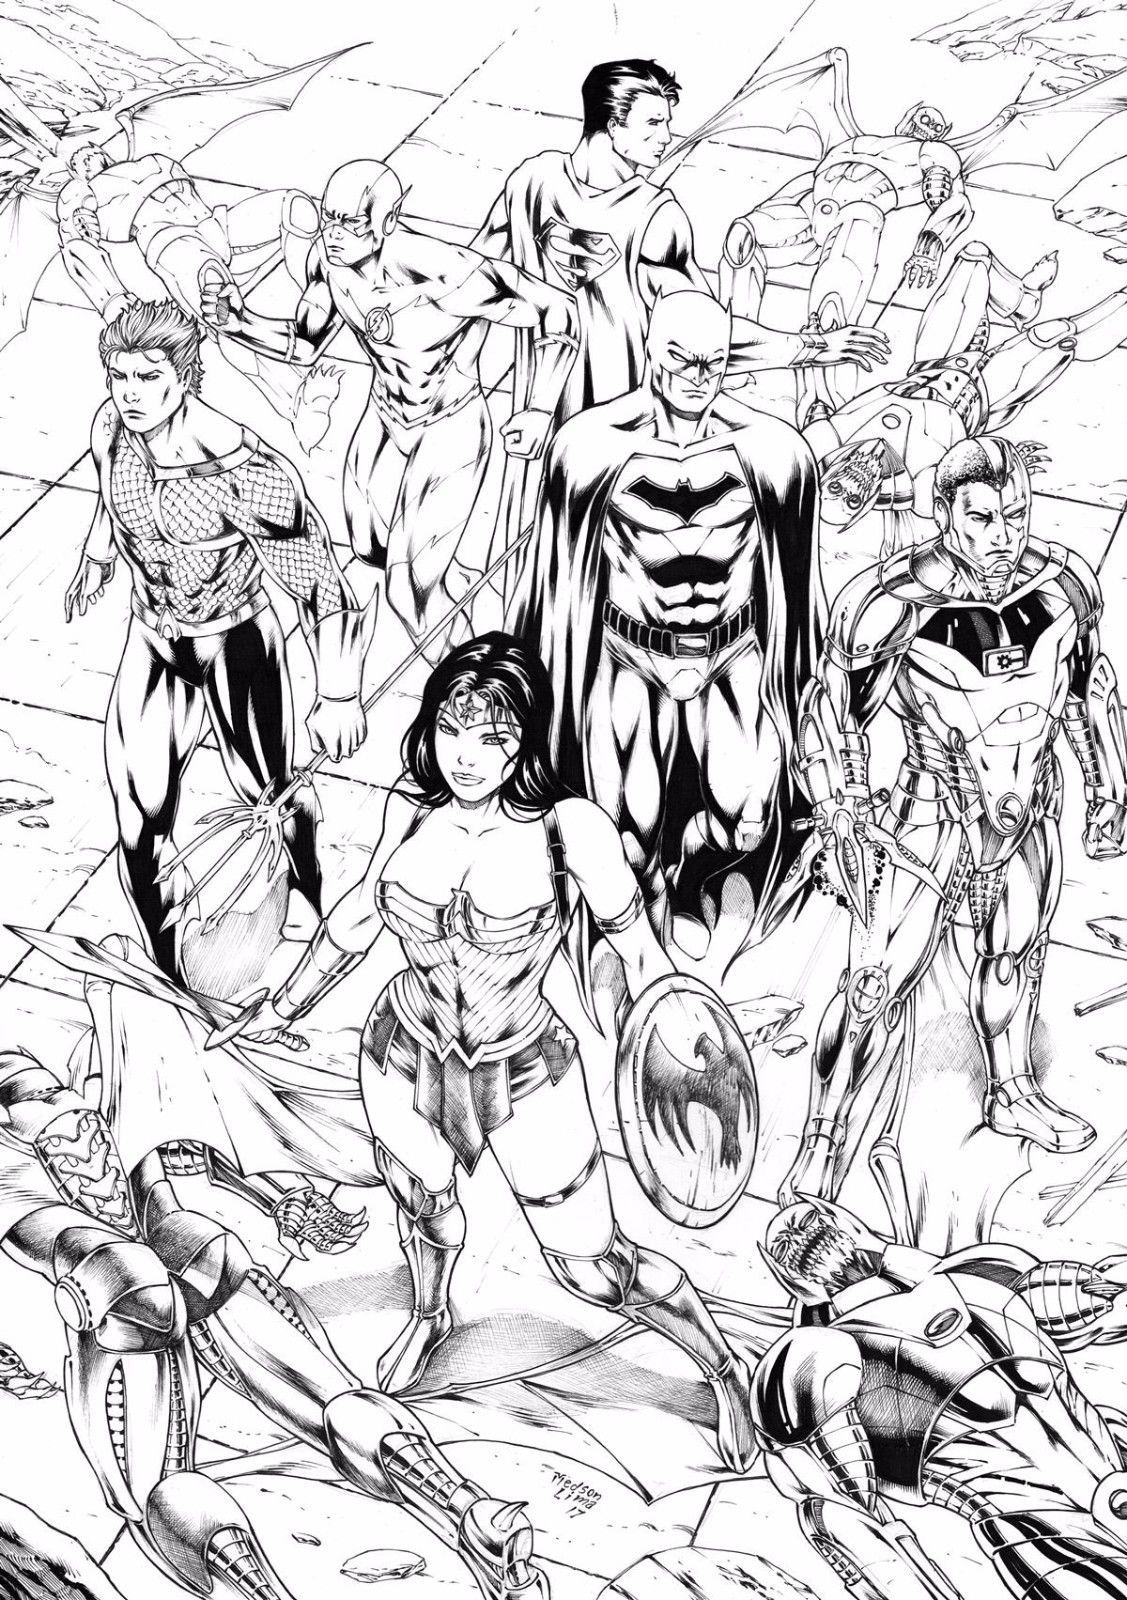 Jla By Medson Lima Justice League Of America Justice League Artwork